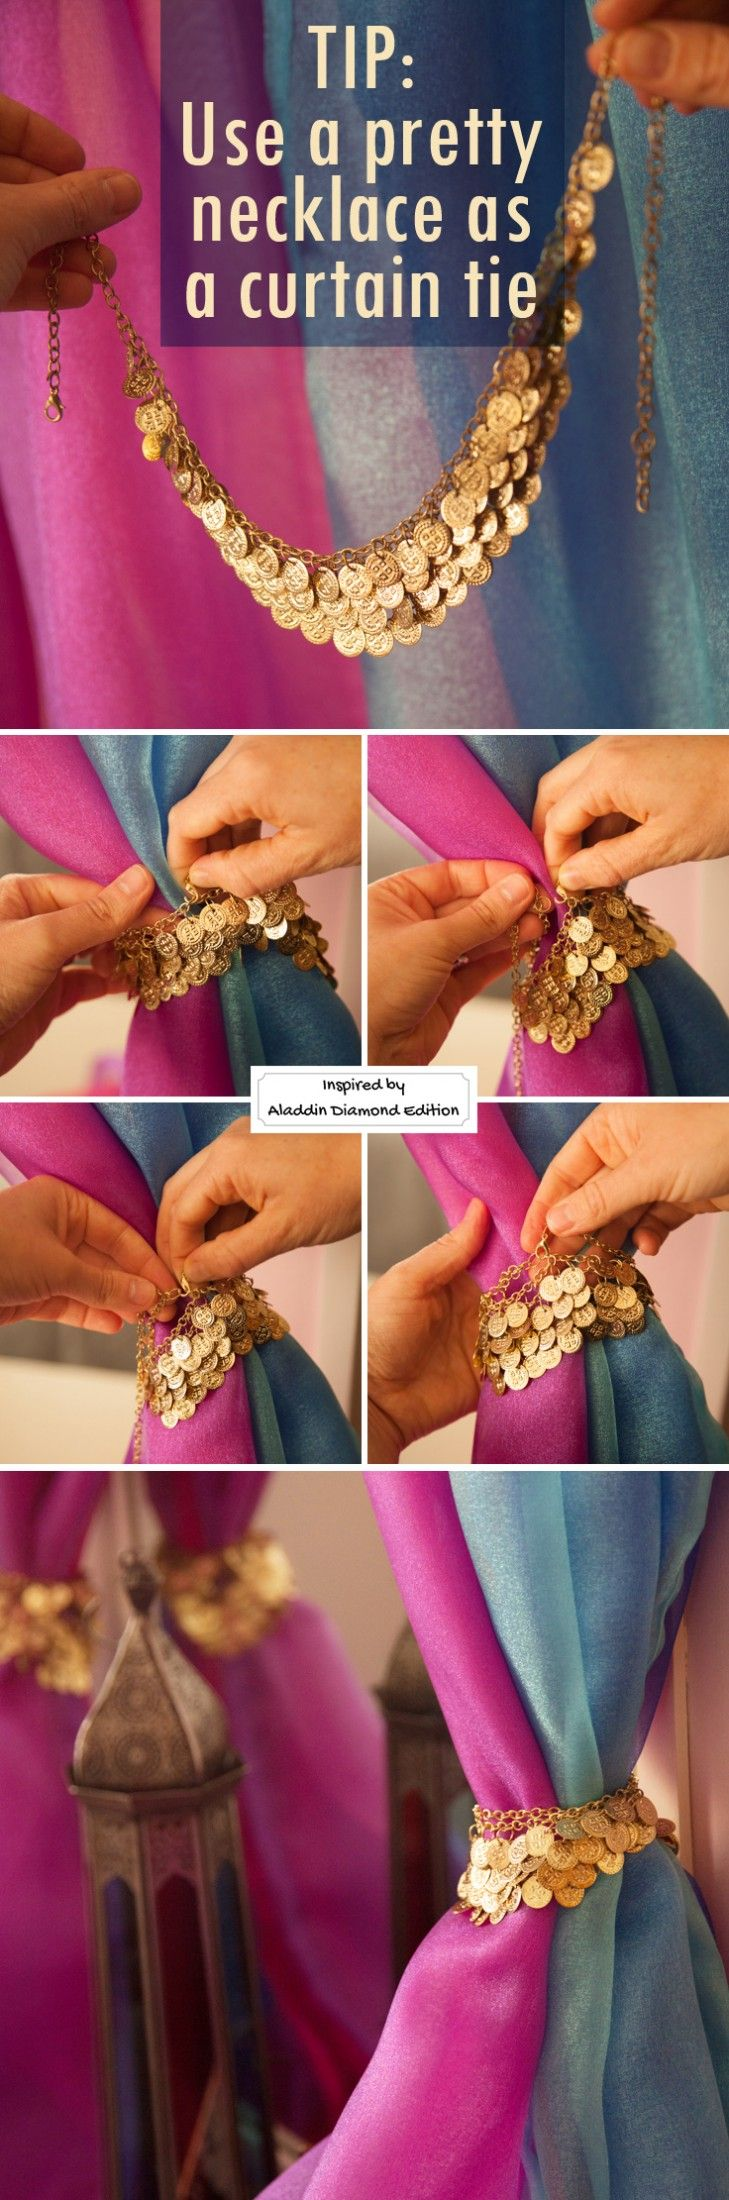 Use a pretty necklace instead of a curtain tie for your dresser mirror curtain D...